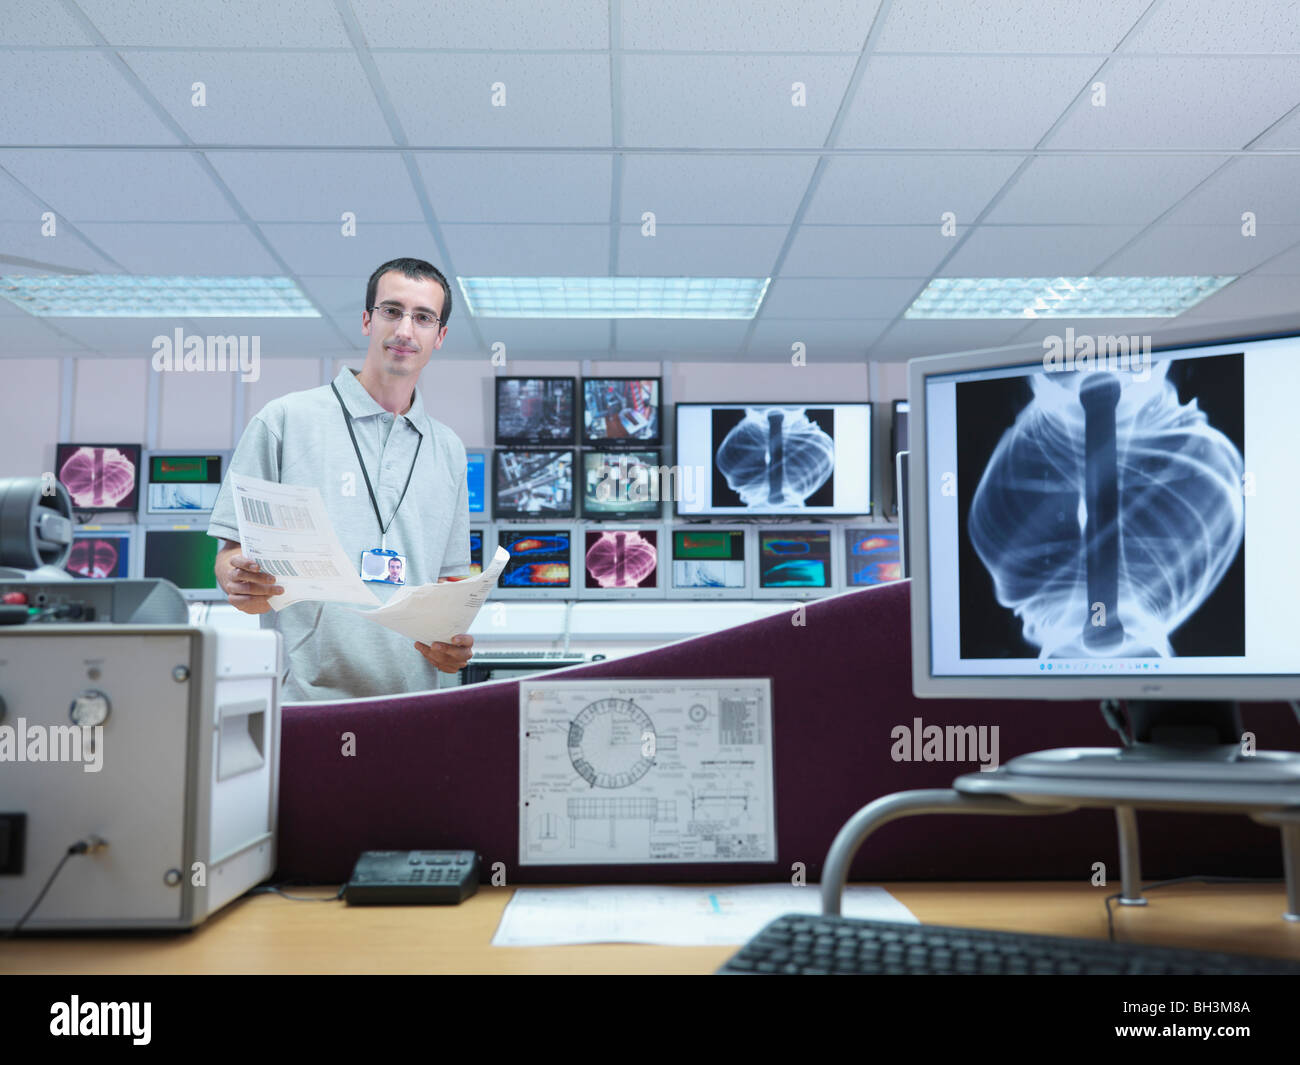 Fusion Reactor Scientist With Screens - Stock Image